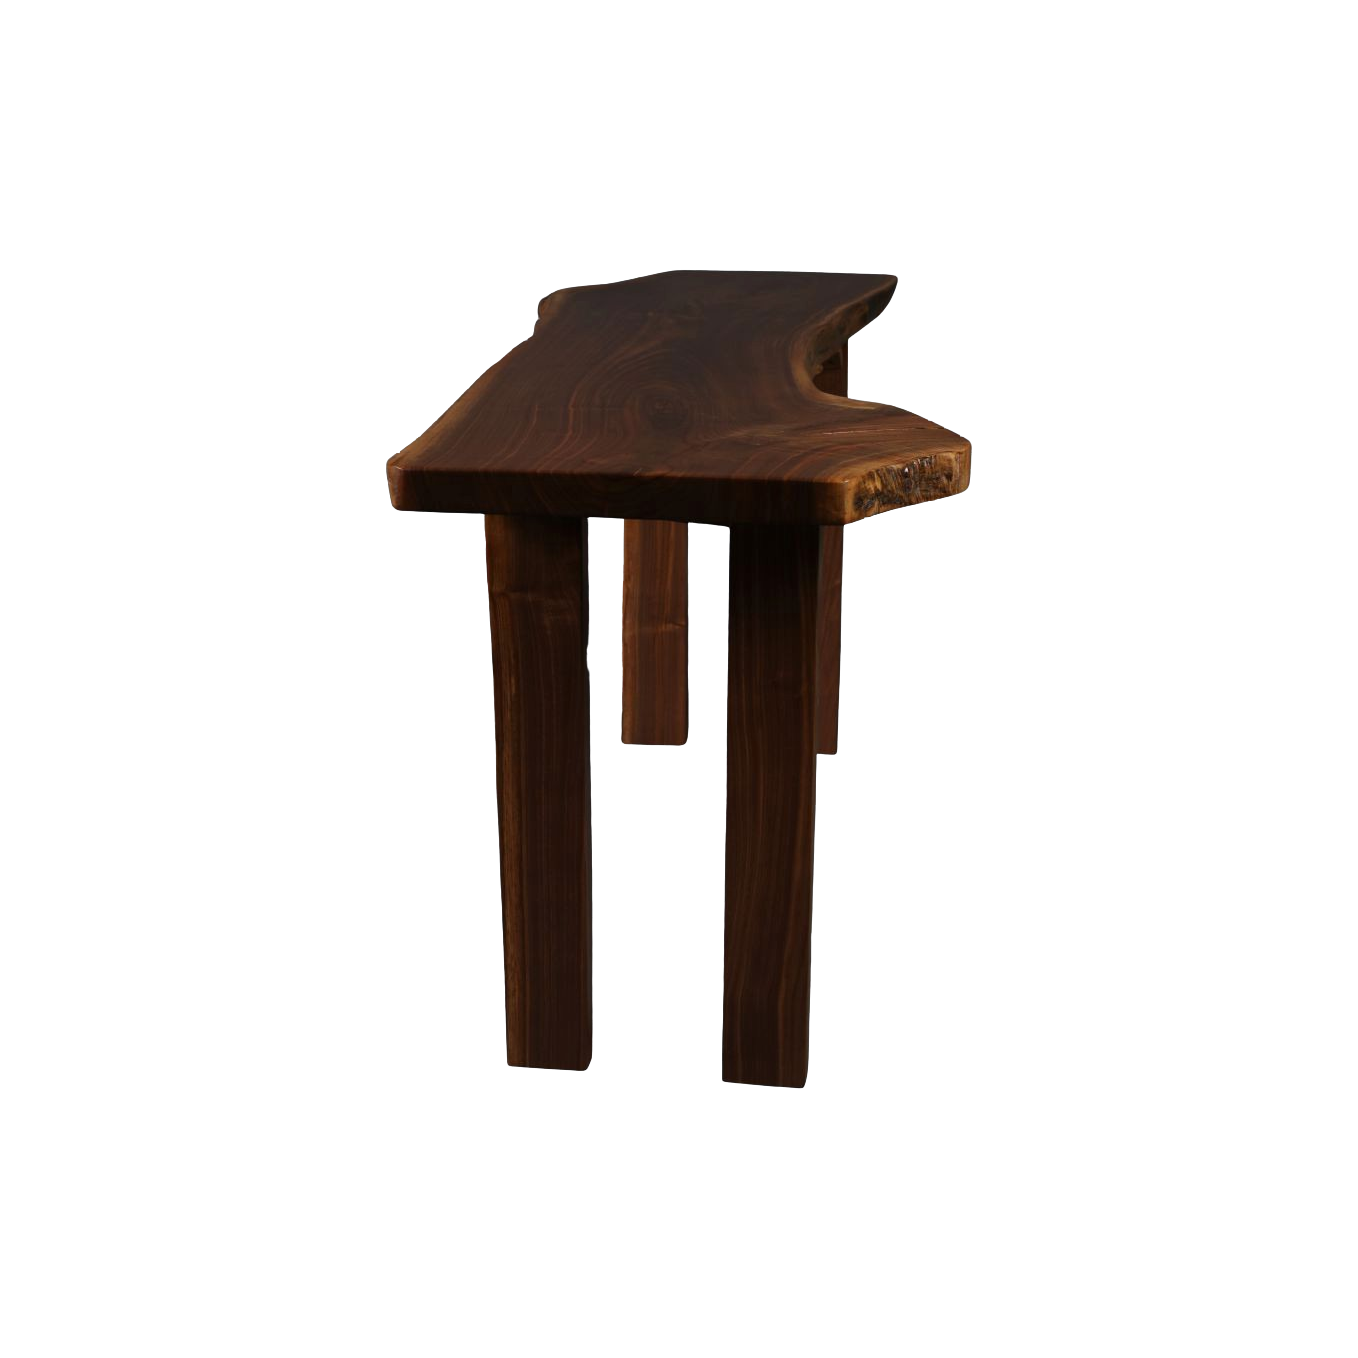 Nantucket Black Walnut Foyer Table (1250)